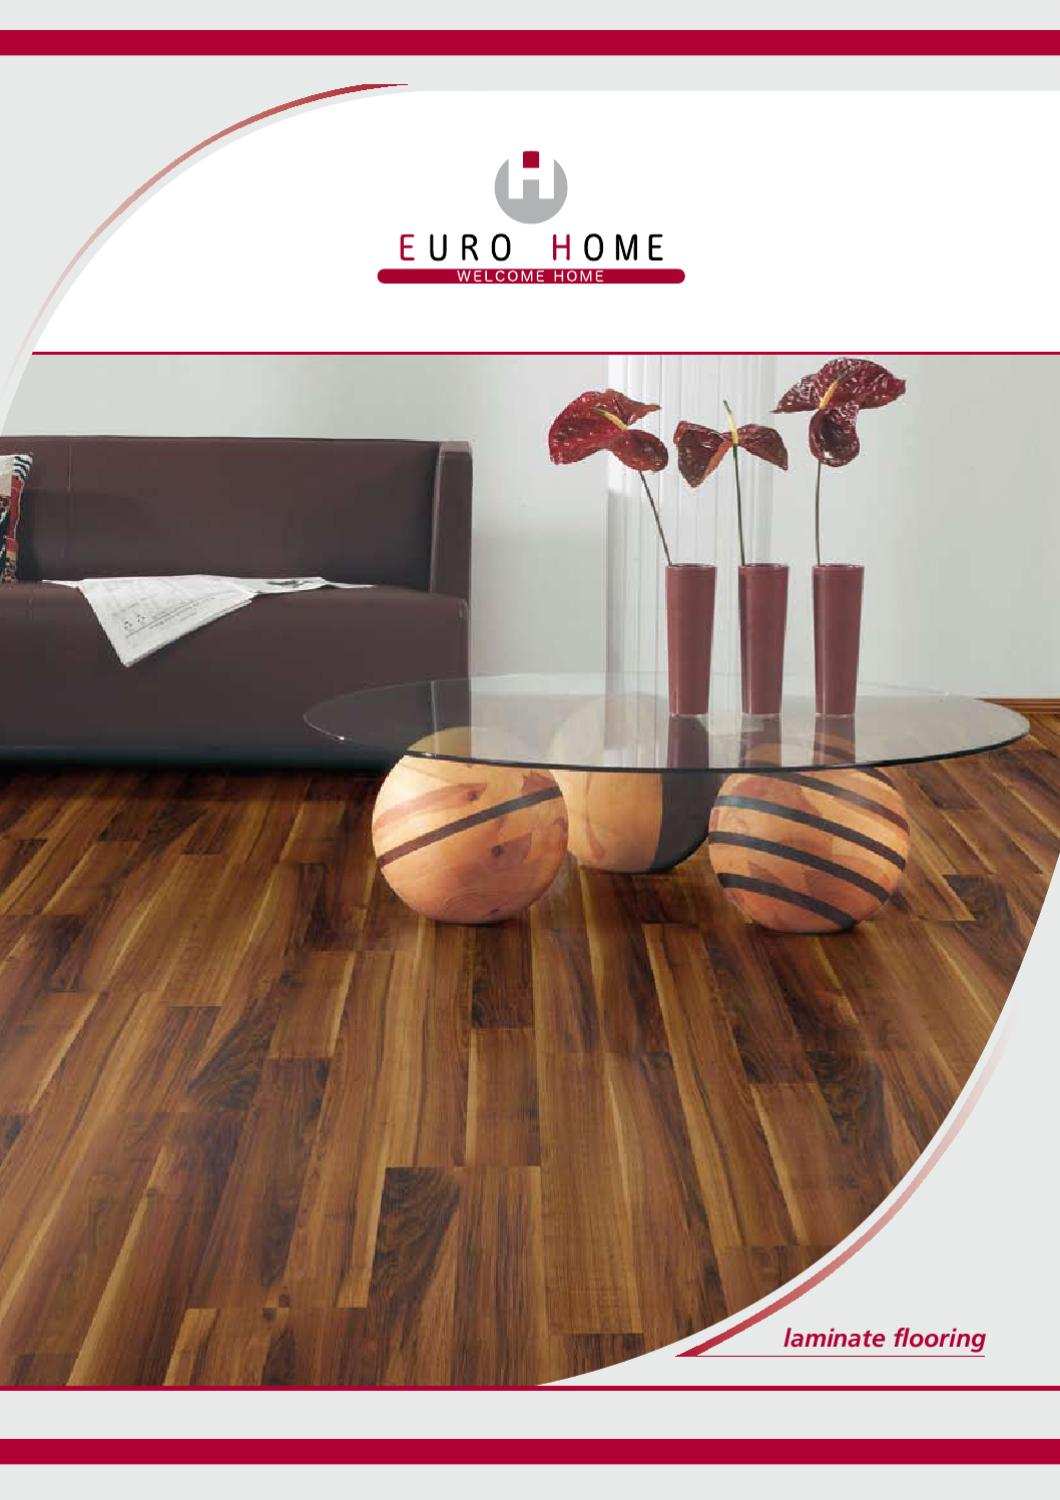 Eurohome products for life